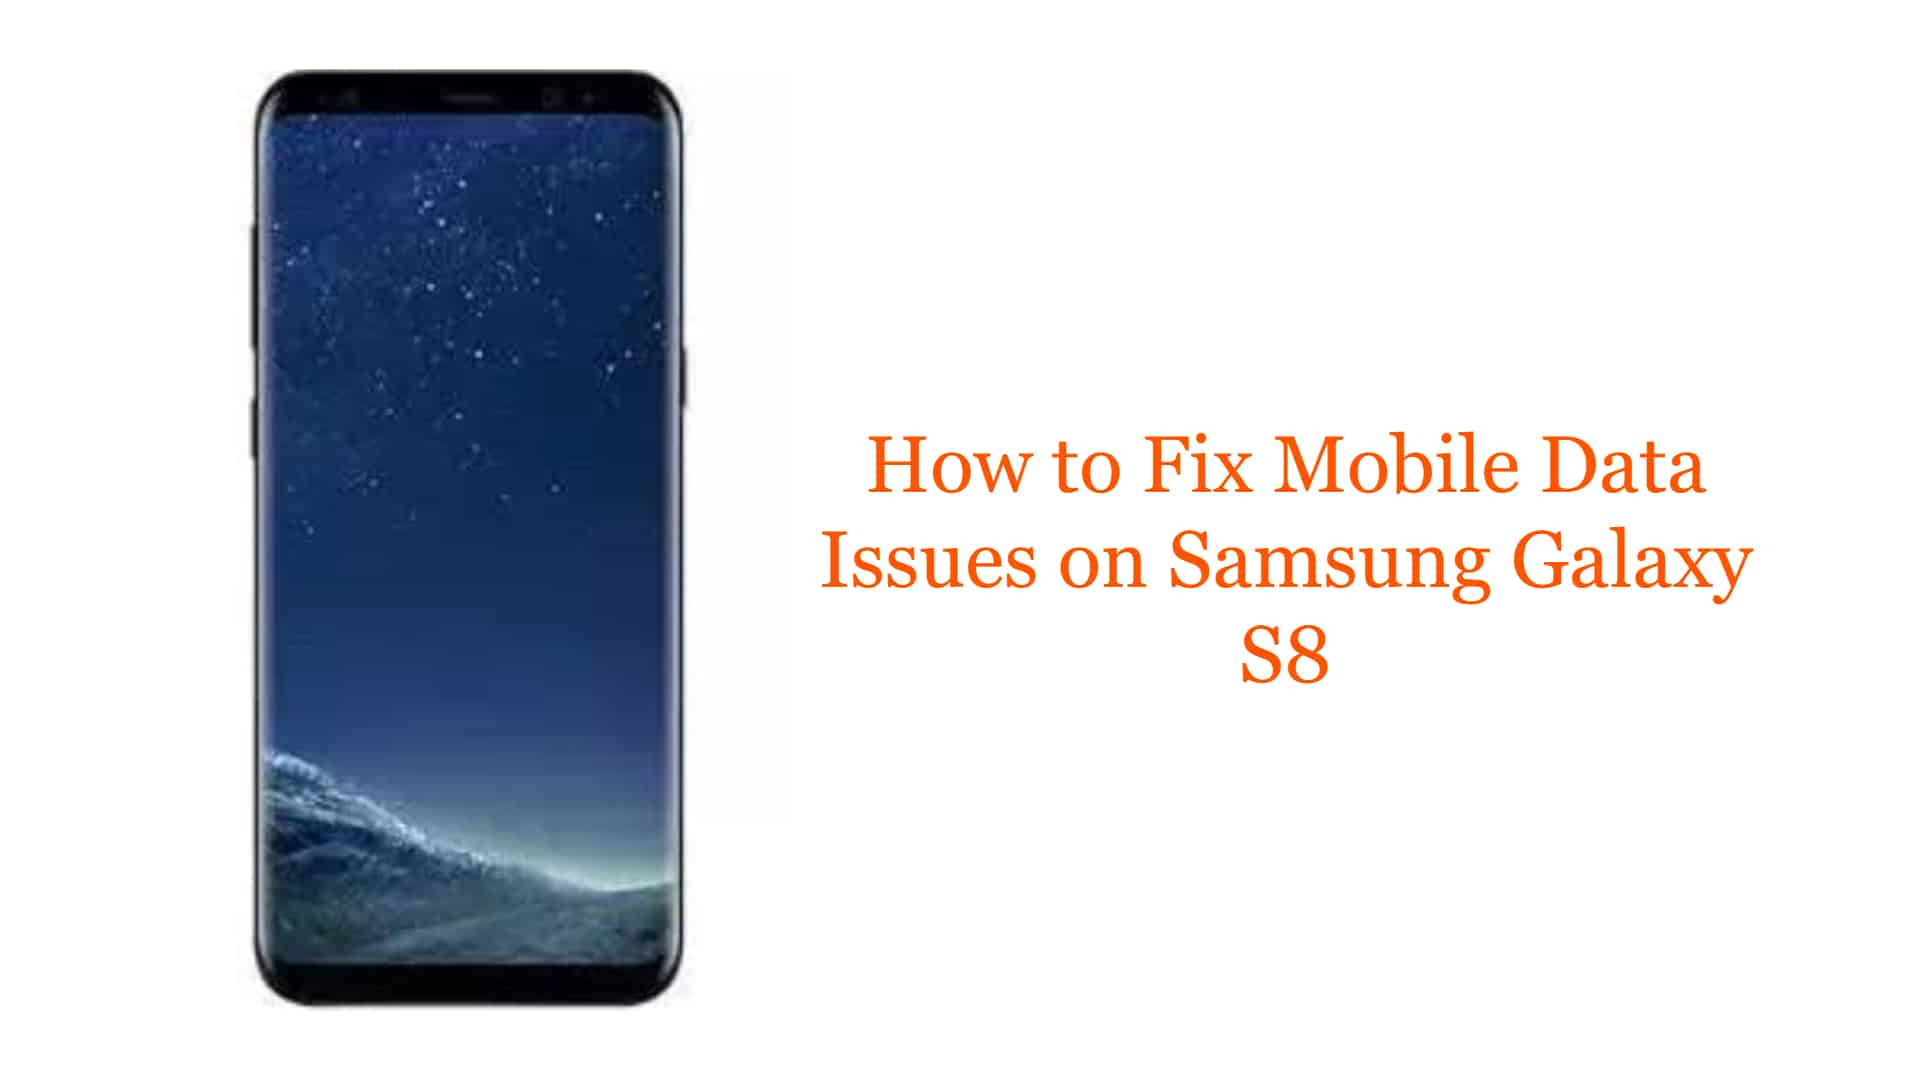 How To Fix Mobile Data Issues On Samsung Galaxy S8